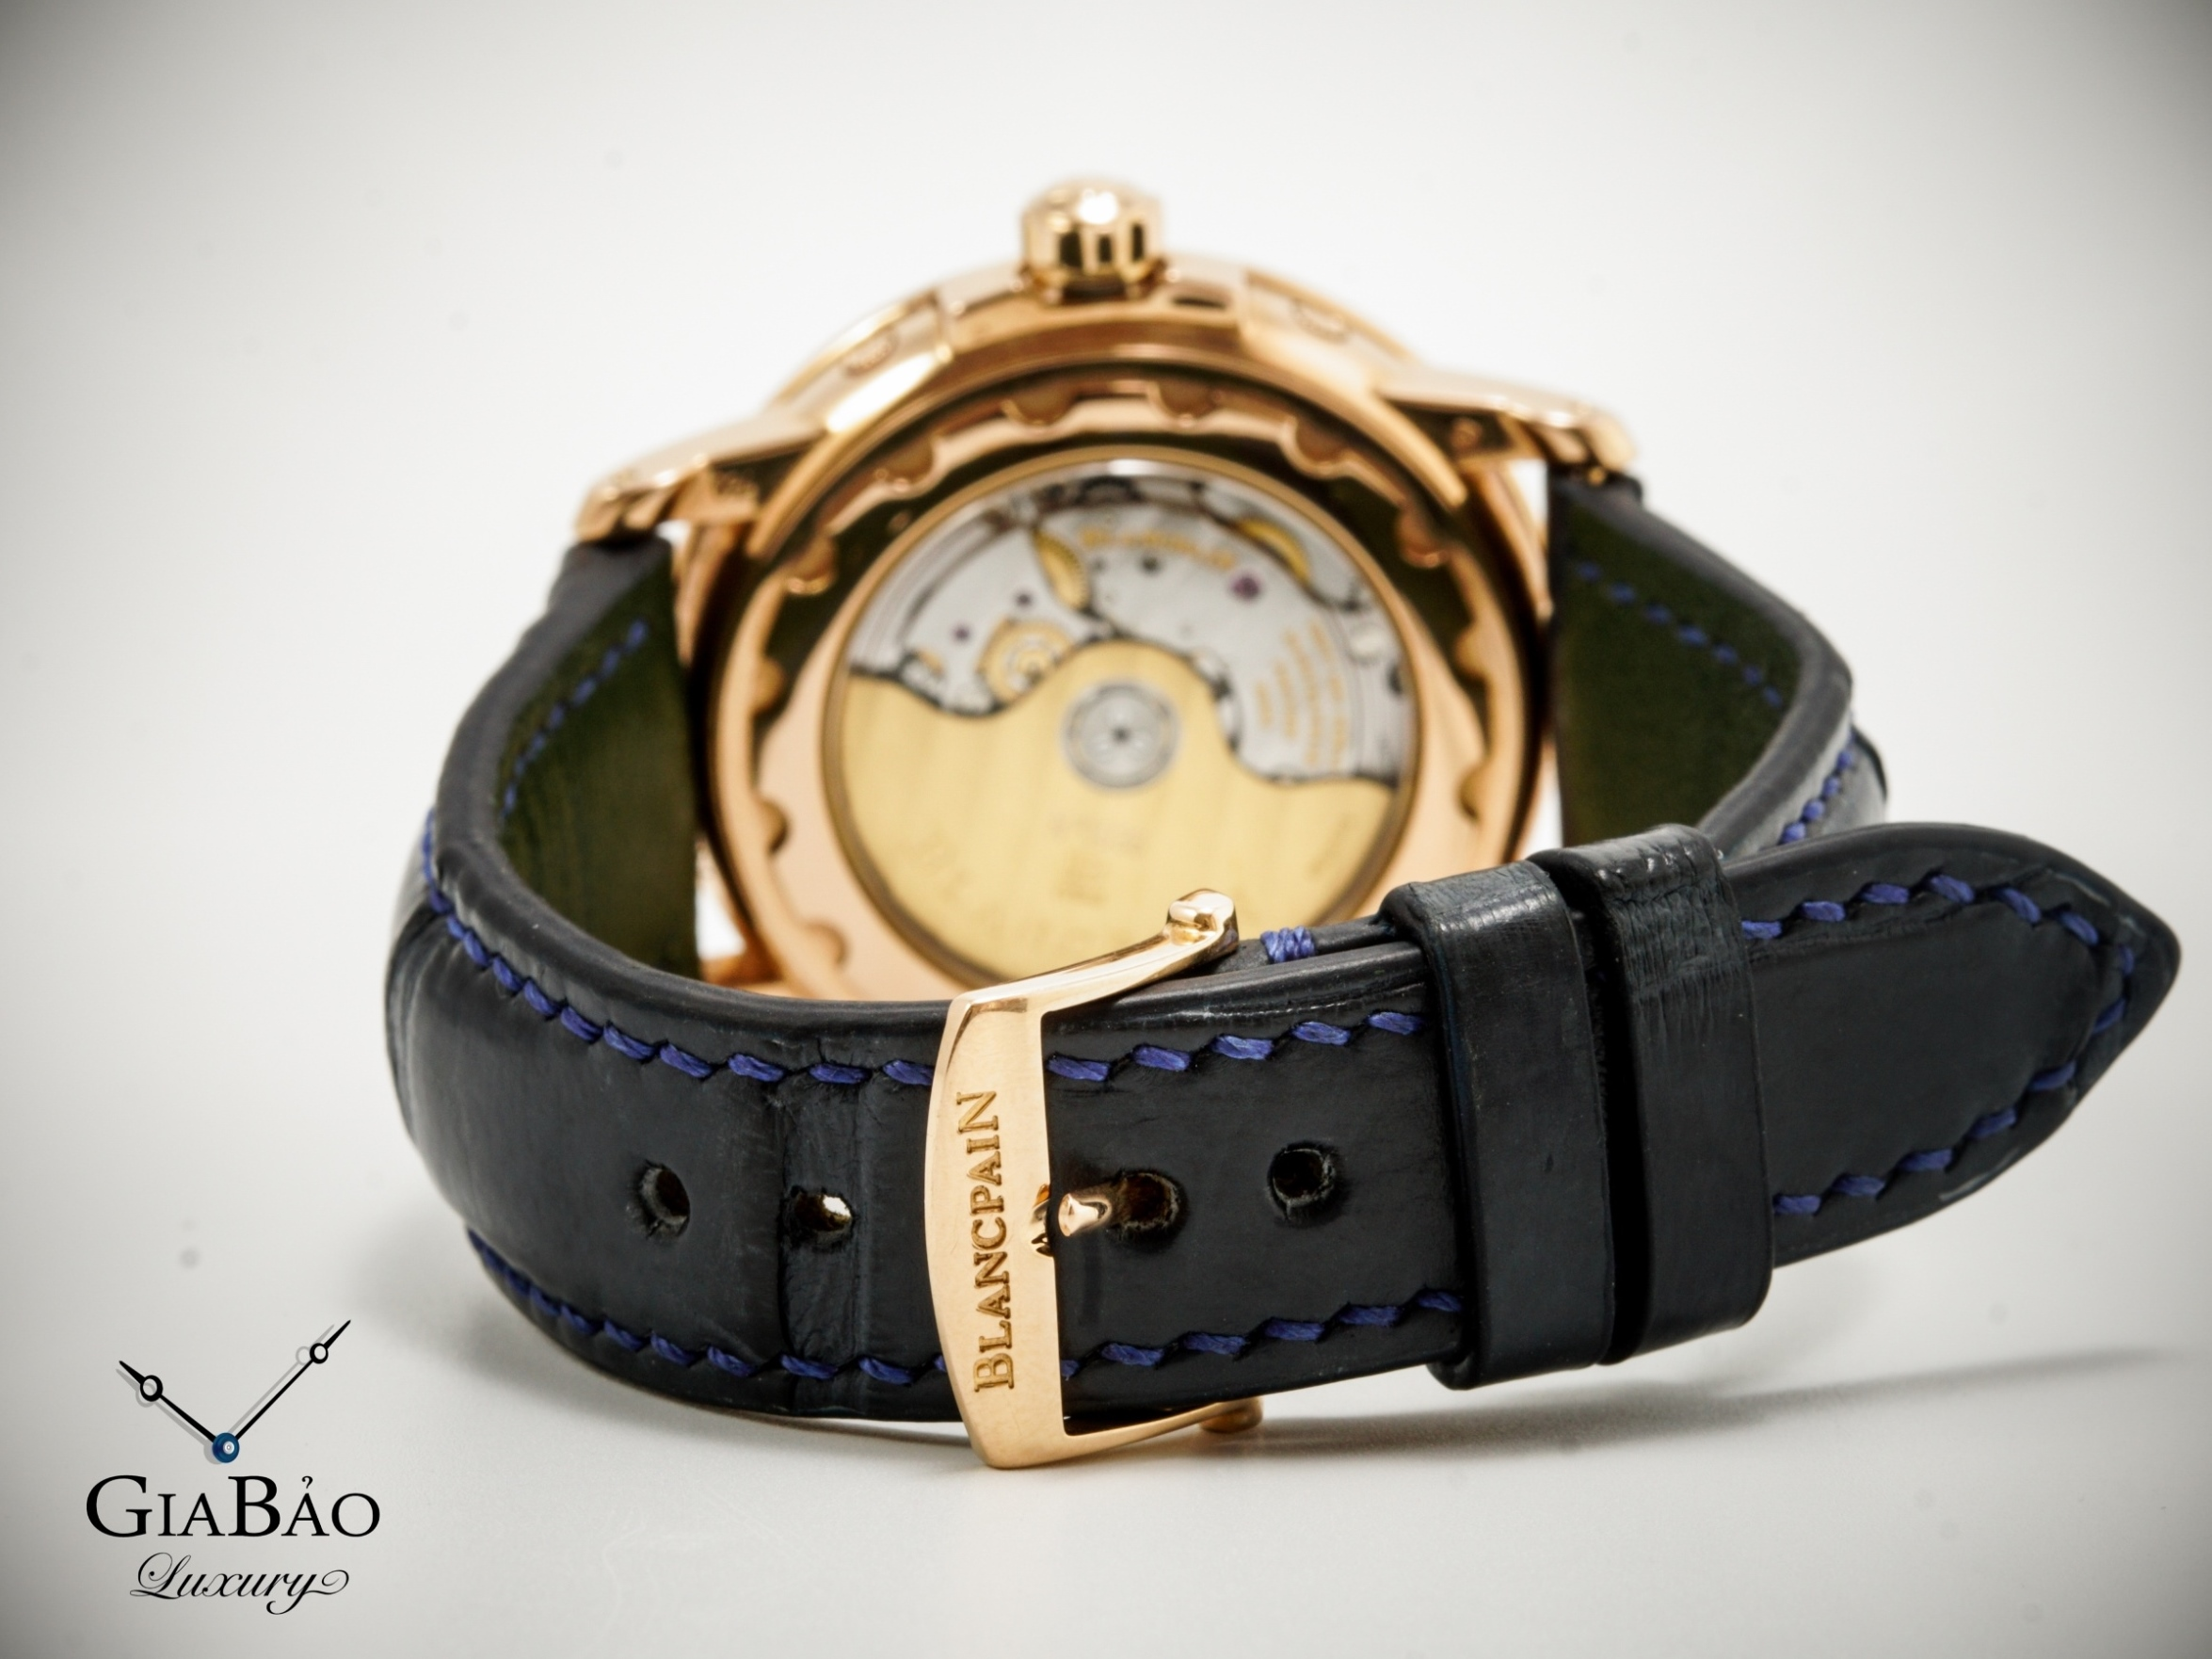 ĐỒNG HỒ BLANCPAIN LESMAN MOONPHASE COMPLETED CALENDAR